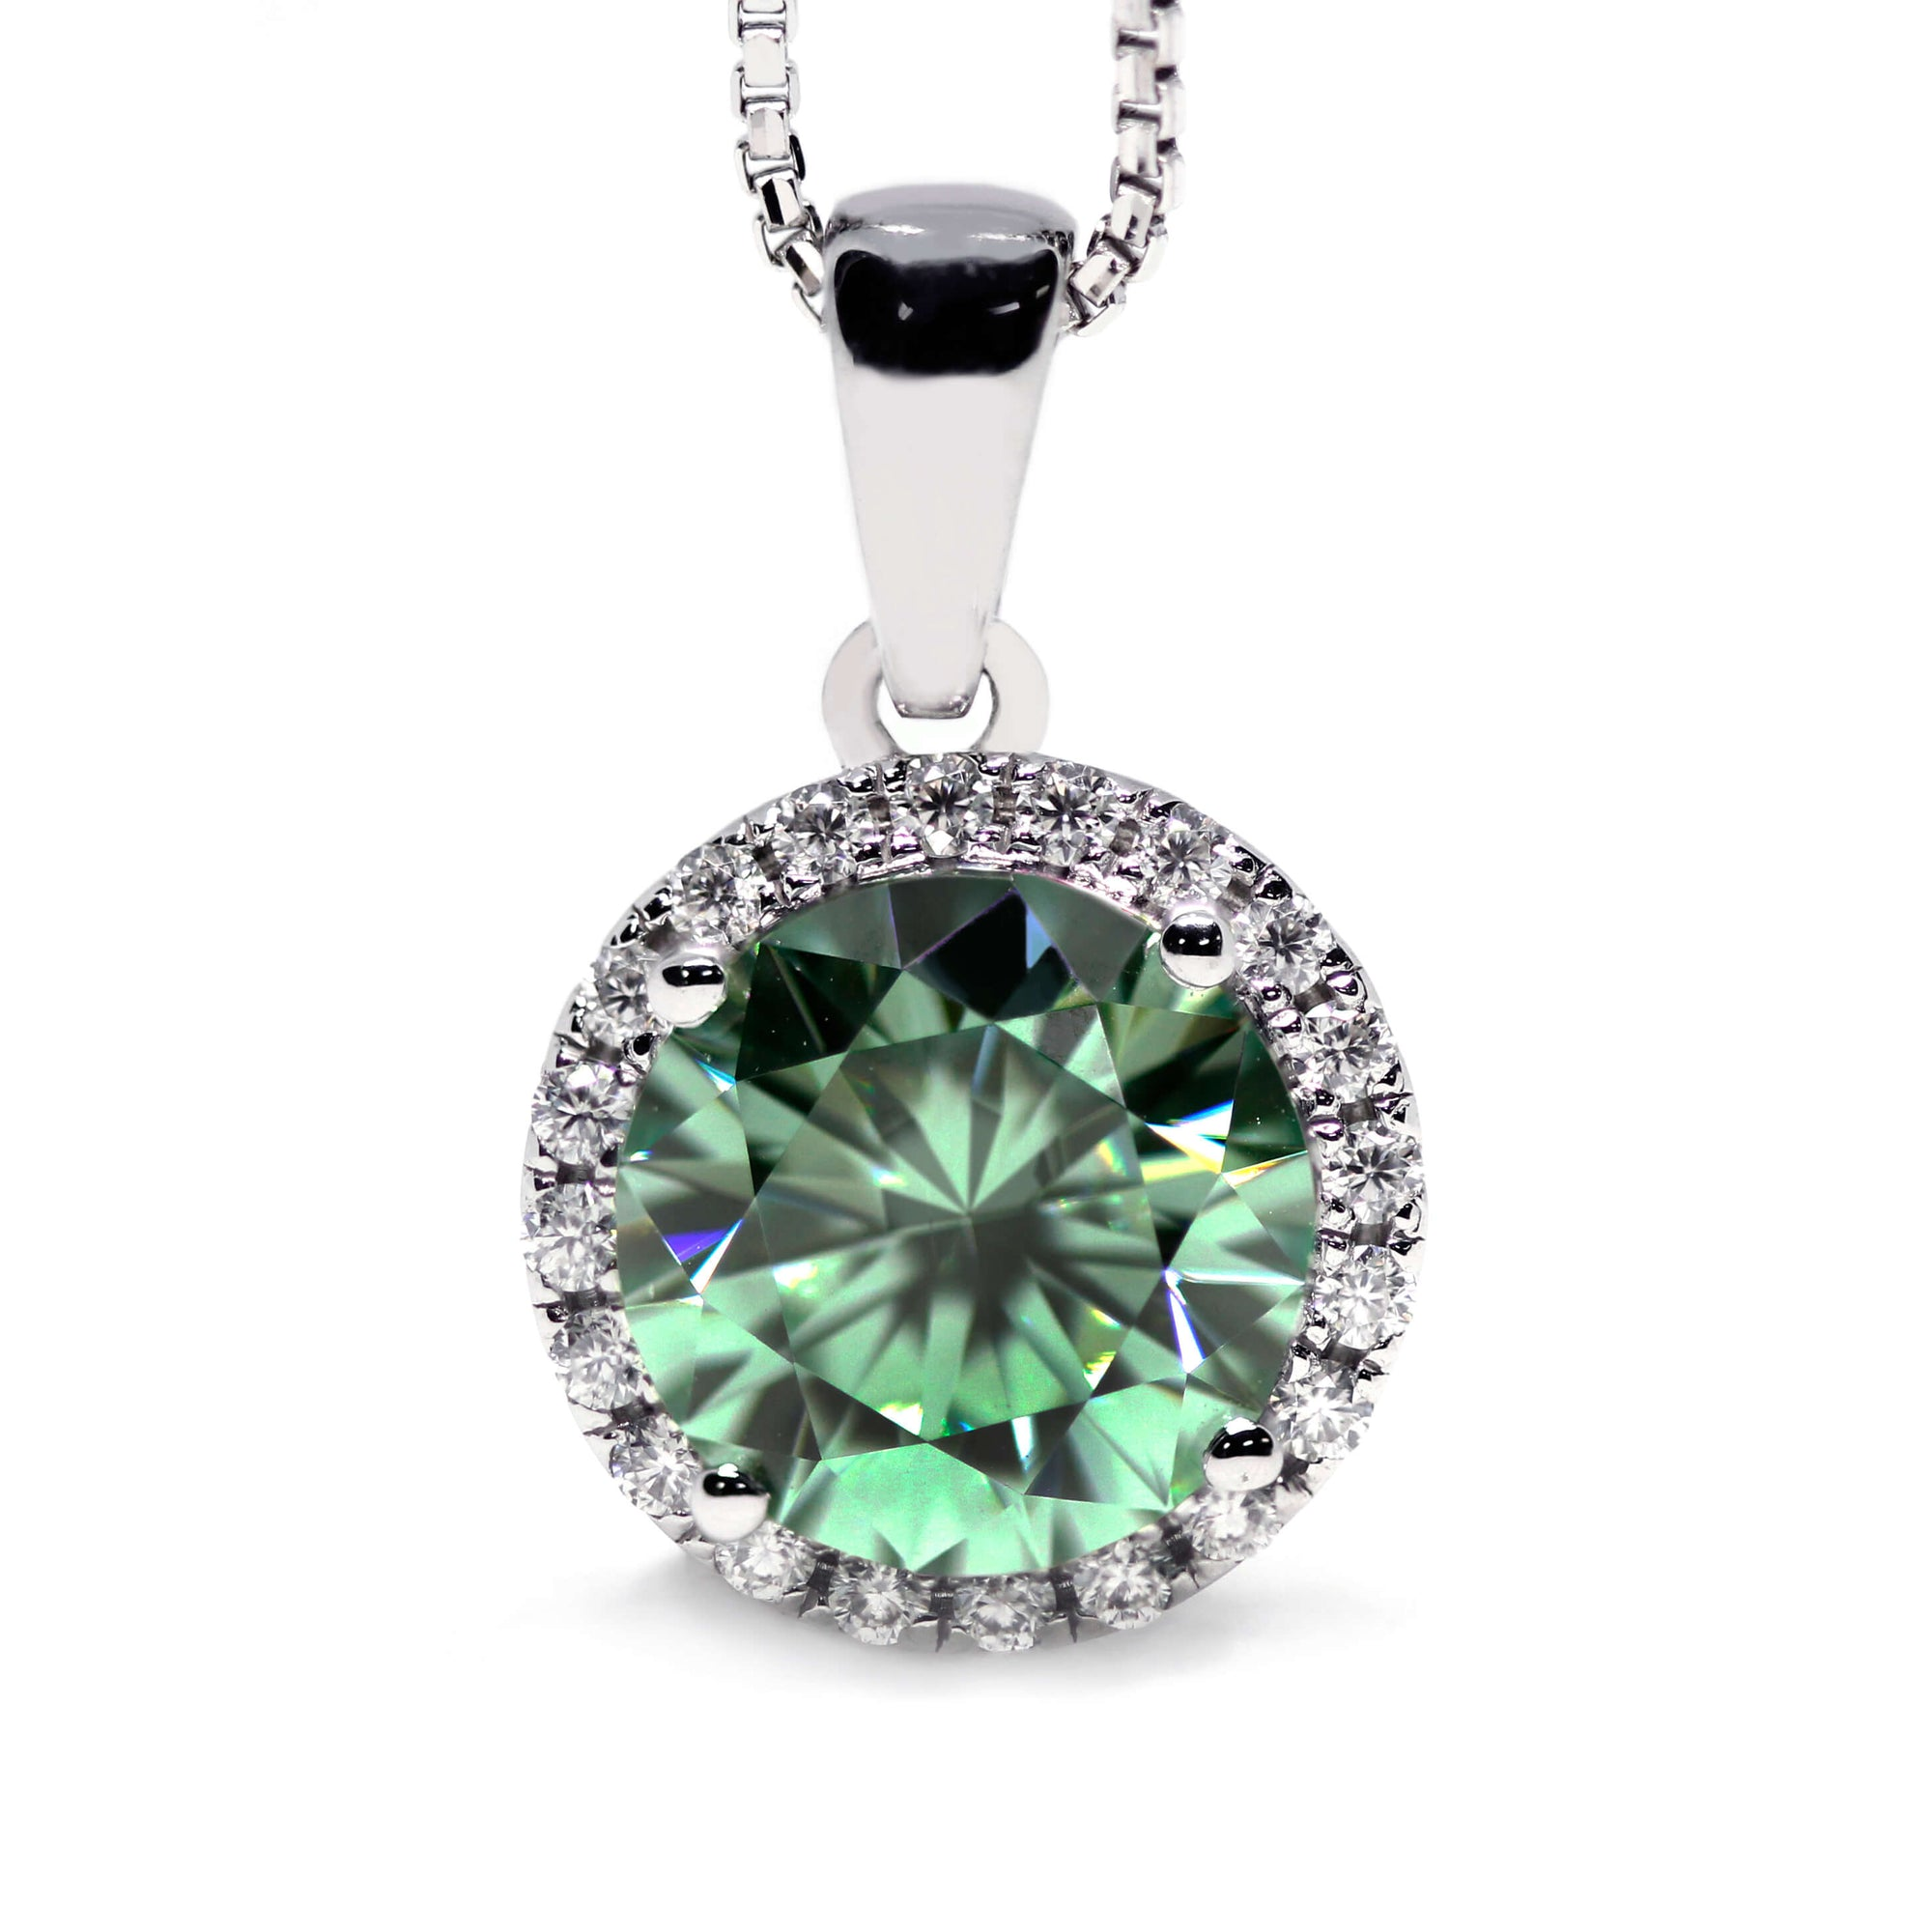 Medium Green Moissanite Round Halo 18K Gold Pendant - LeCaine Gems